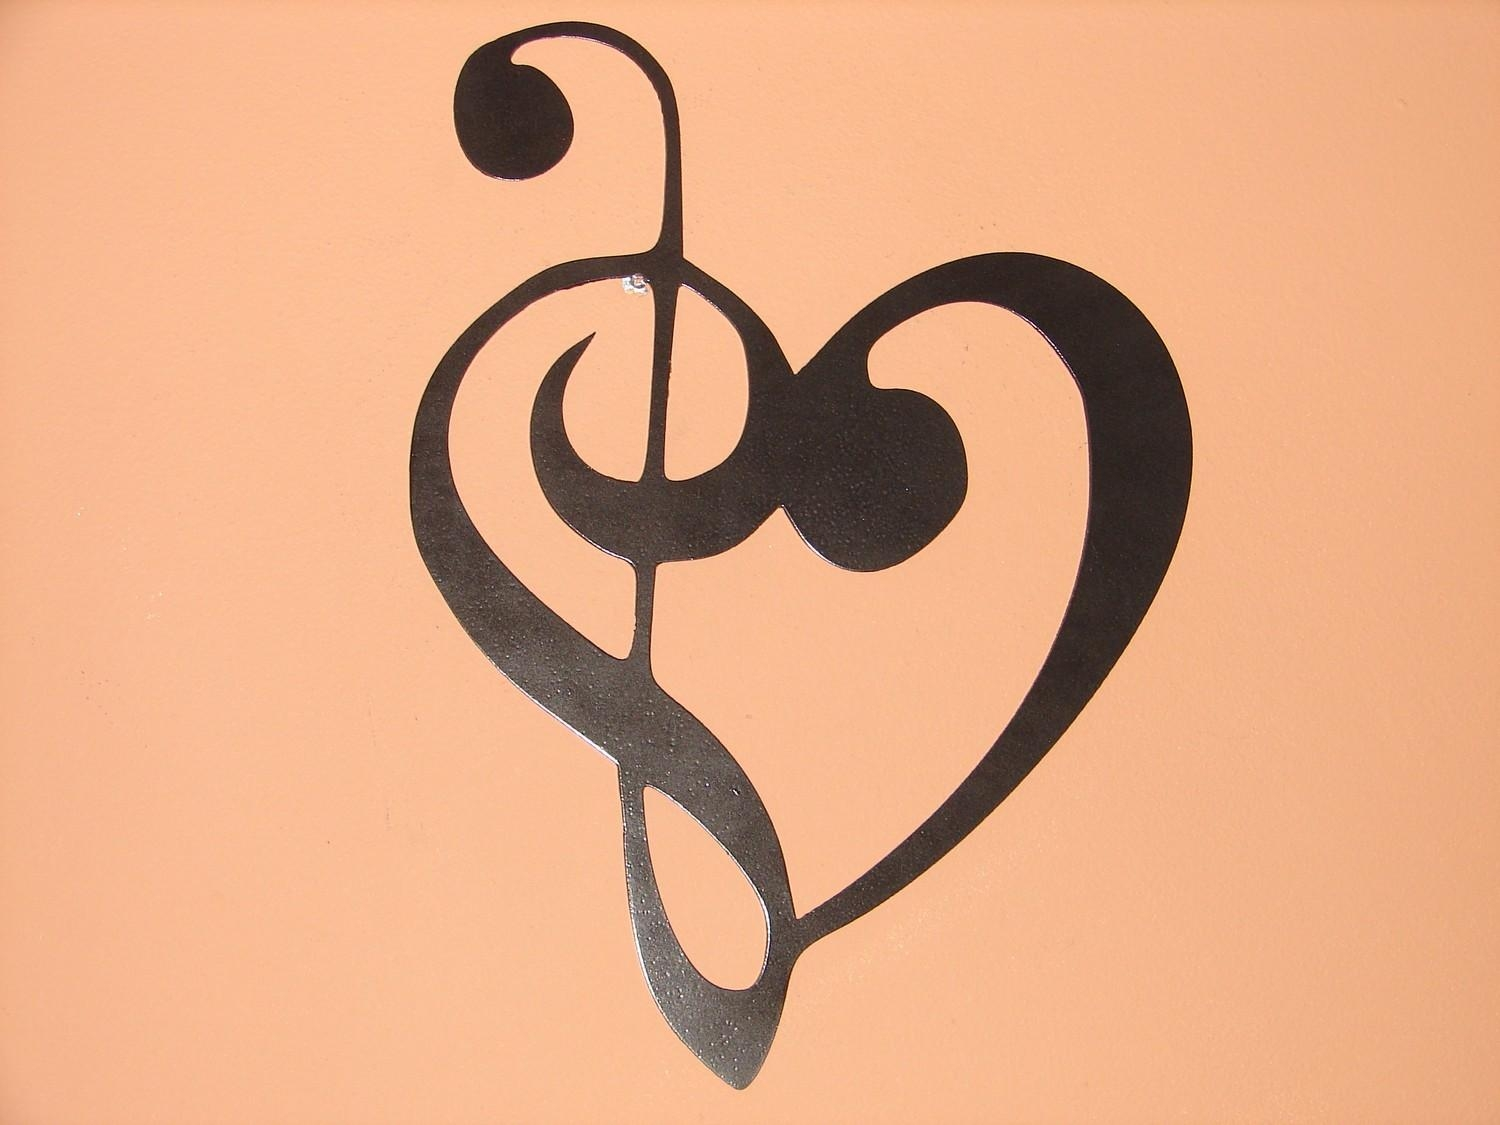 Metal Wall Art Music Heart Notes Musical Treble Clef Inside Music Note Wall Art (Image 6 of 20)